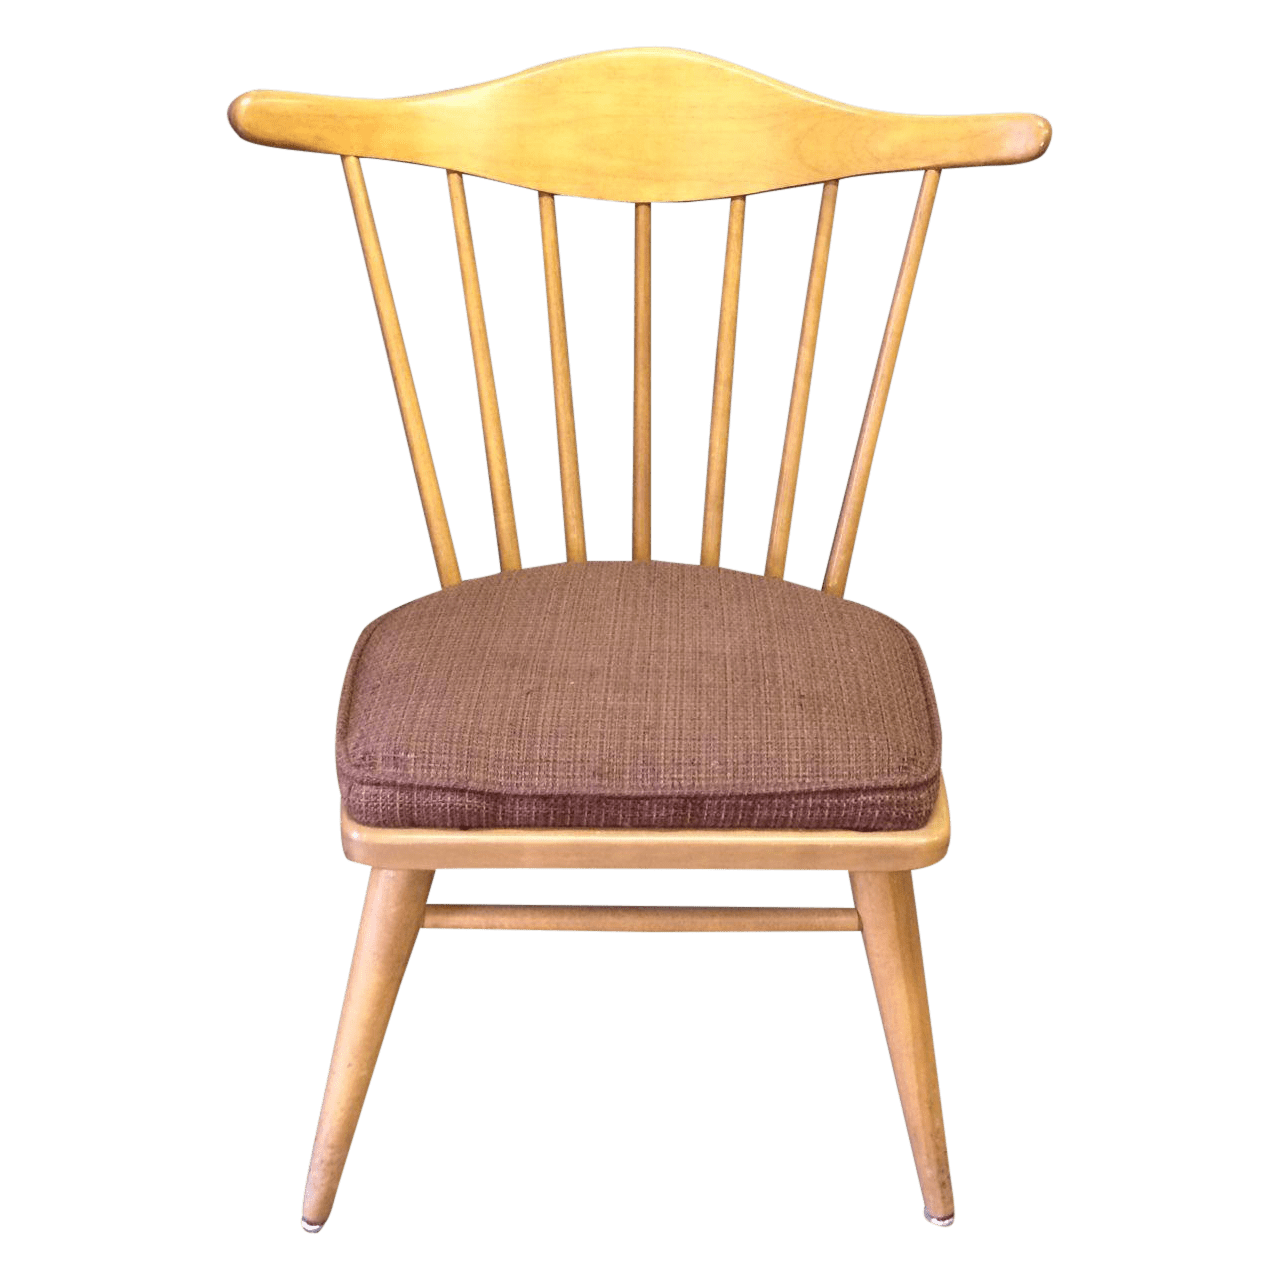 conant ball chair stackable office chairs 1950 39s russel wright mid century chairish